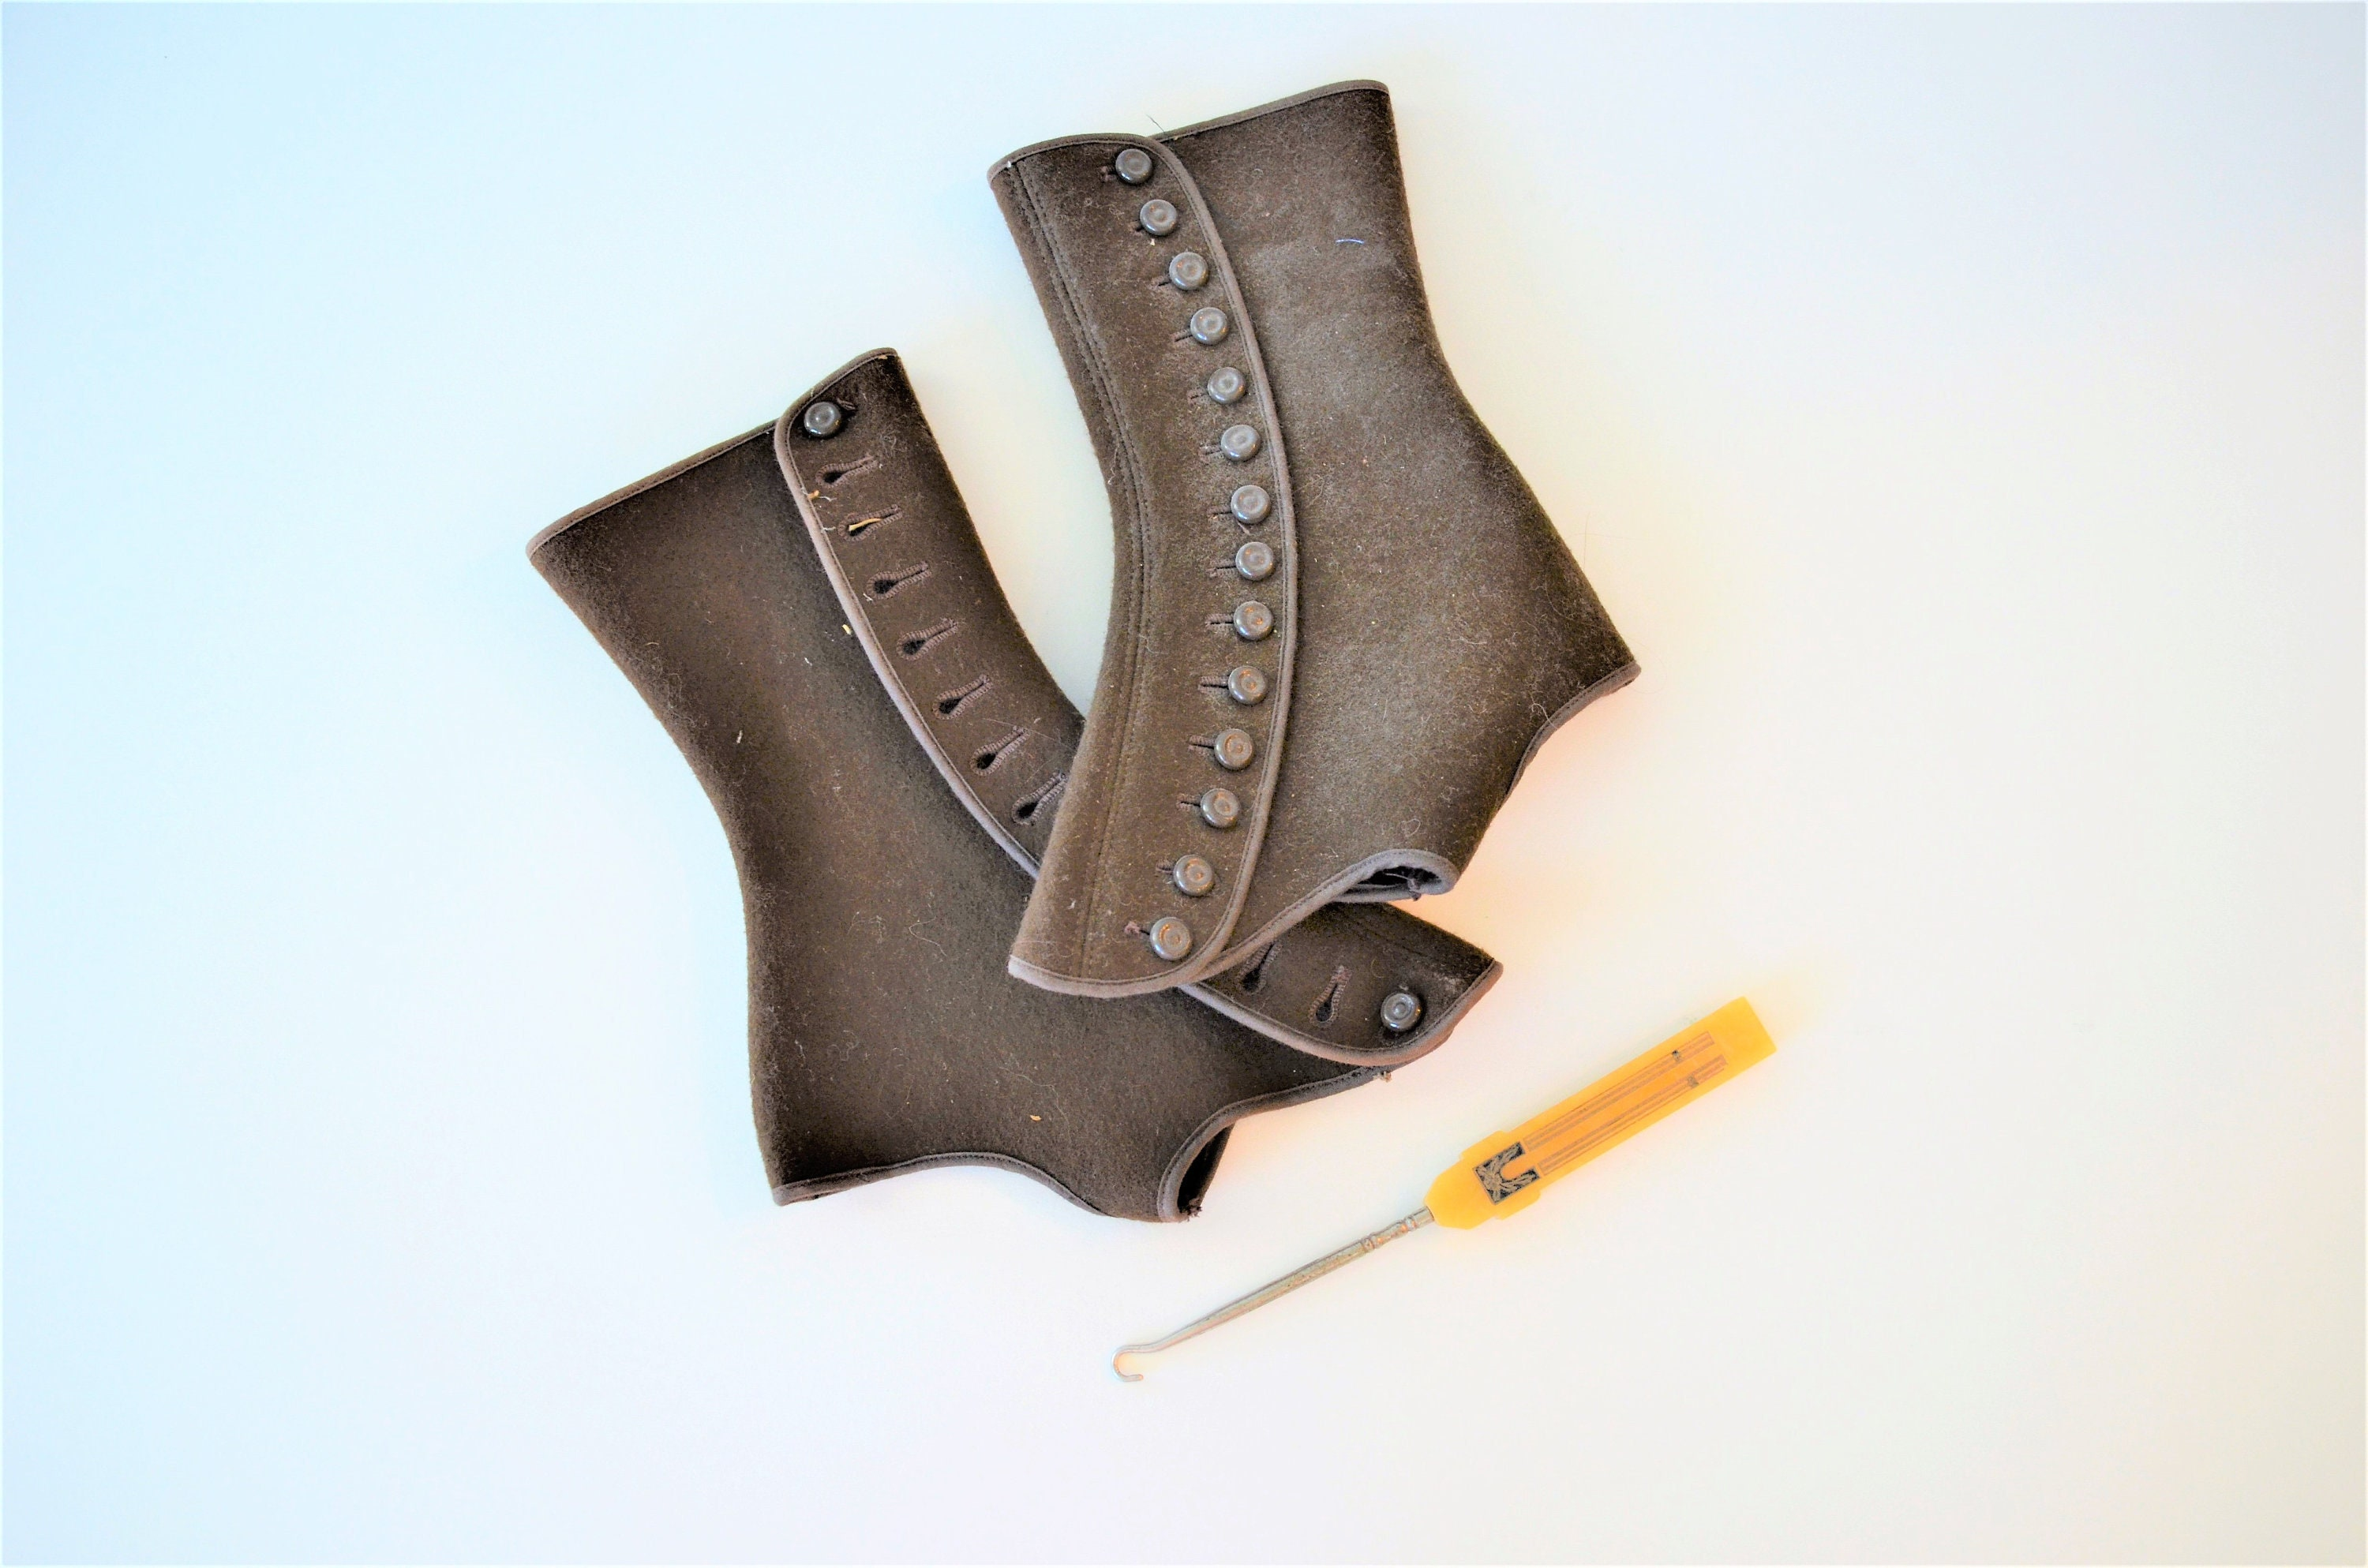 Spats, Gaiters, Puttees – Vintage Shoes Covers Antique Wool Shoe Spats, Victorian Boot Covers, 1800-1900 Edwardian Felt Button Up Spatterdashes Spatter Guards Stylish Dressing $30.00 AT vintagedancer.com